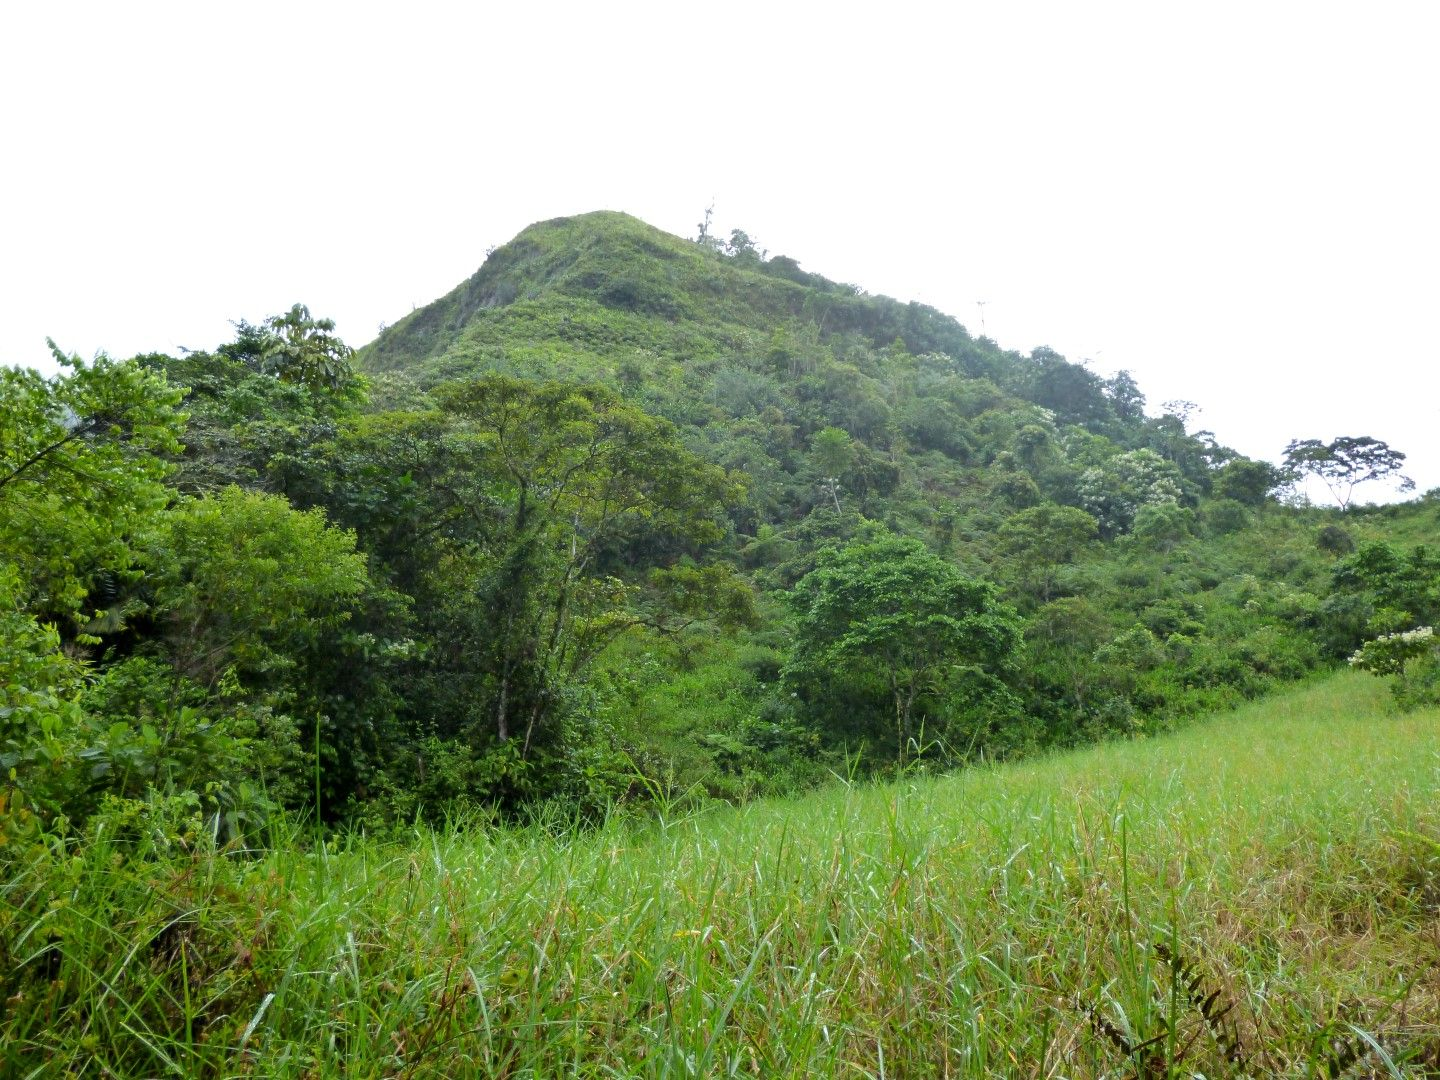 A green hill with tree and indegenous trees